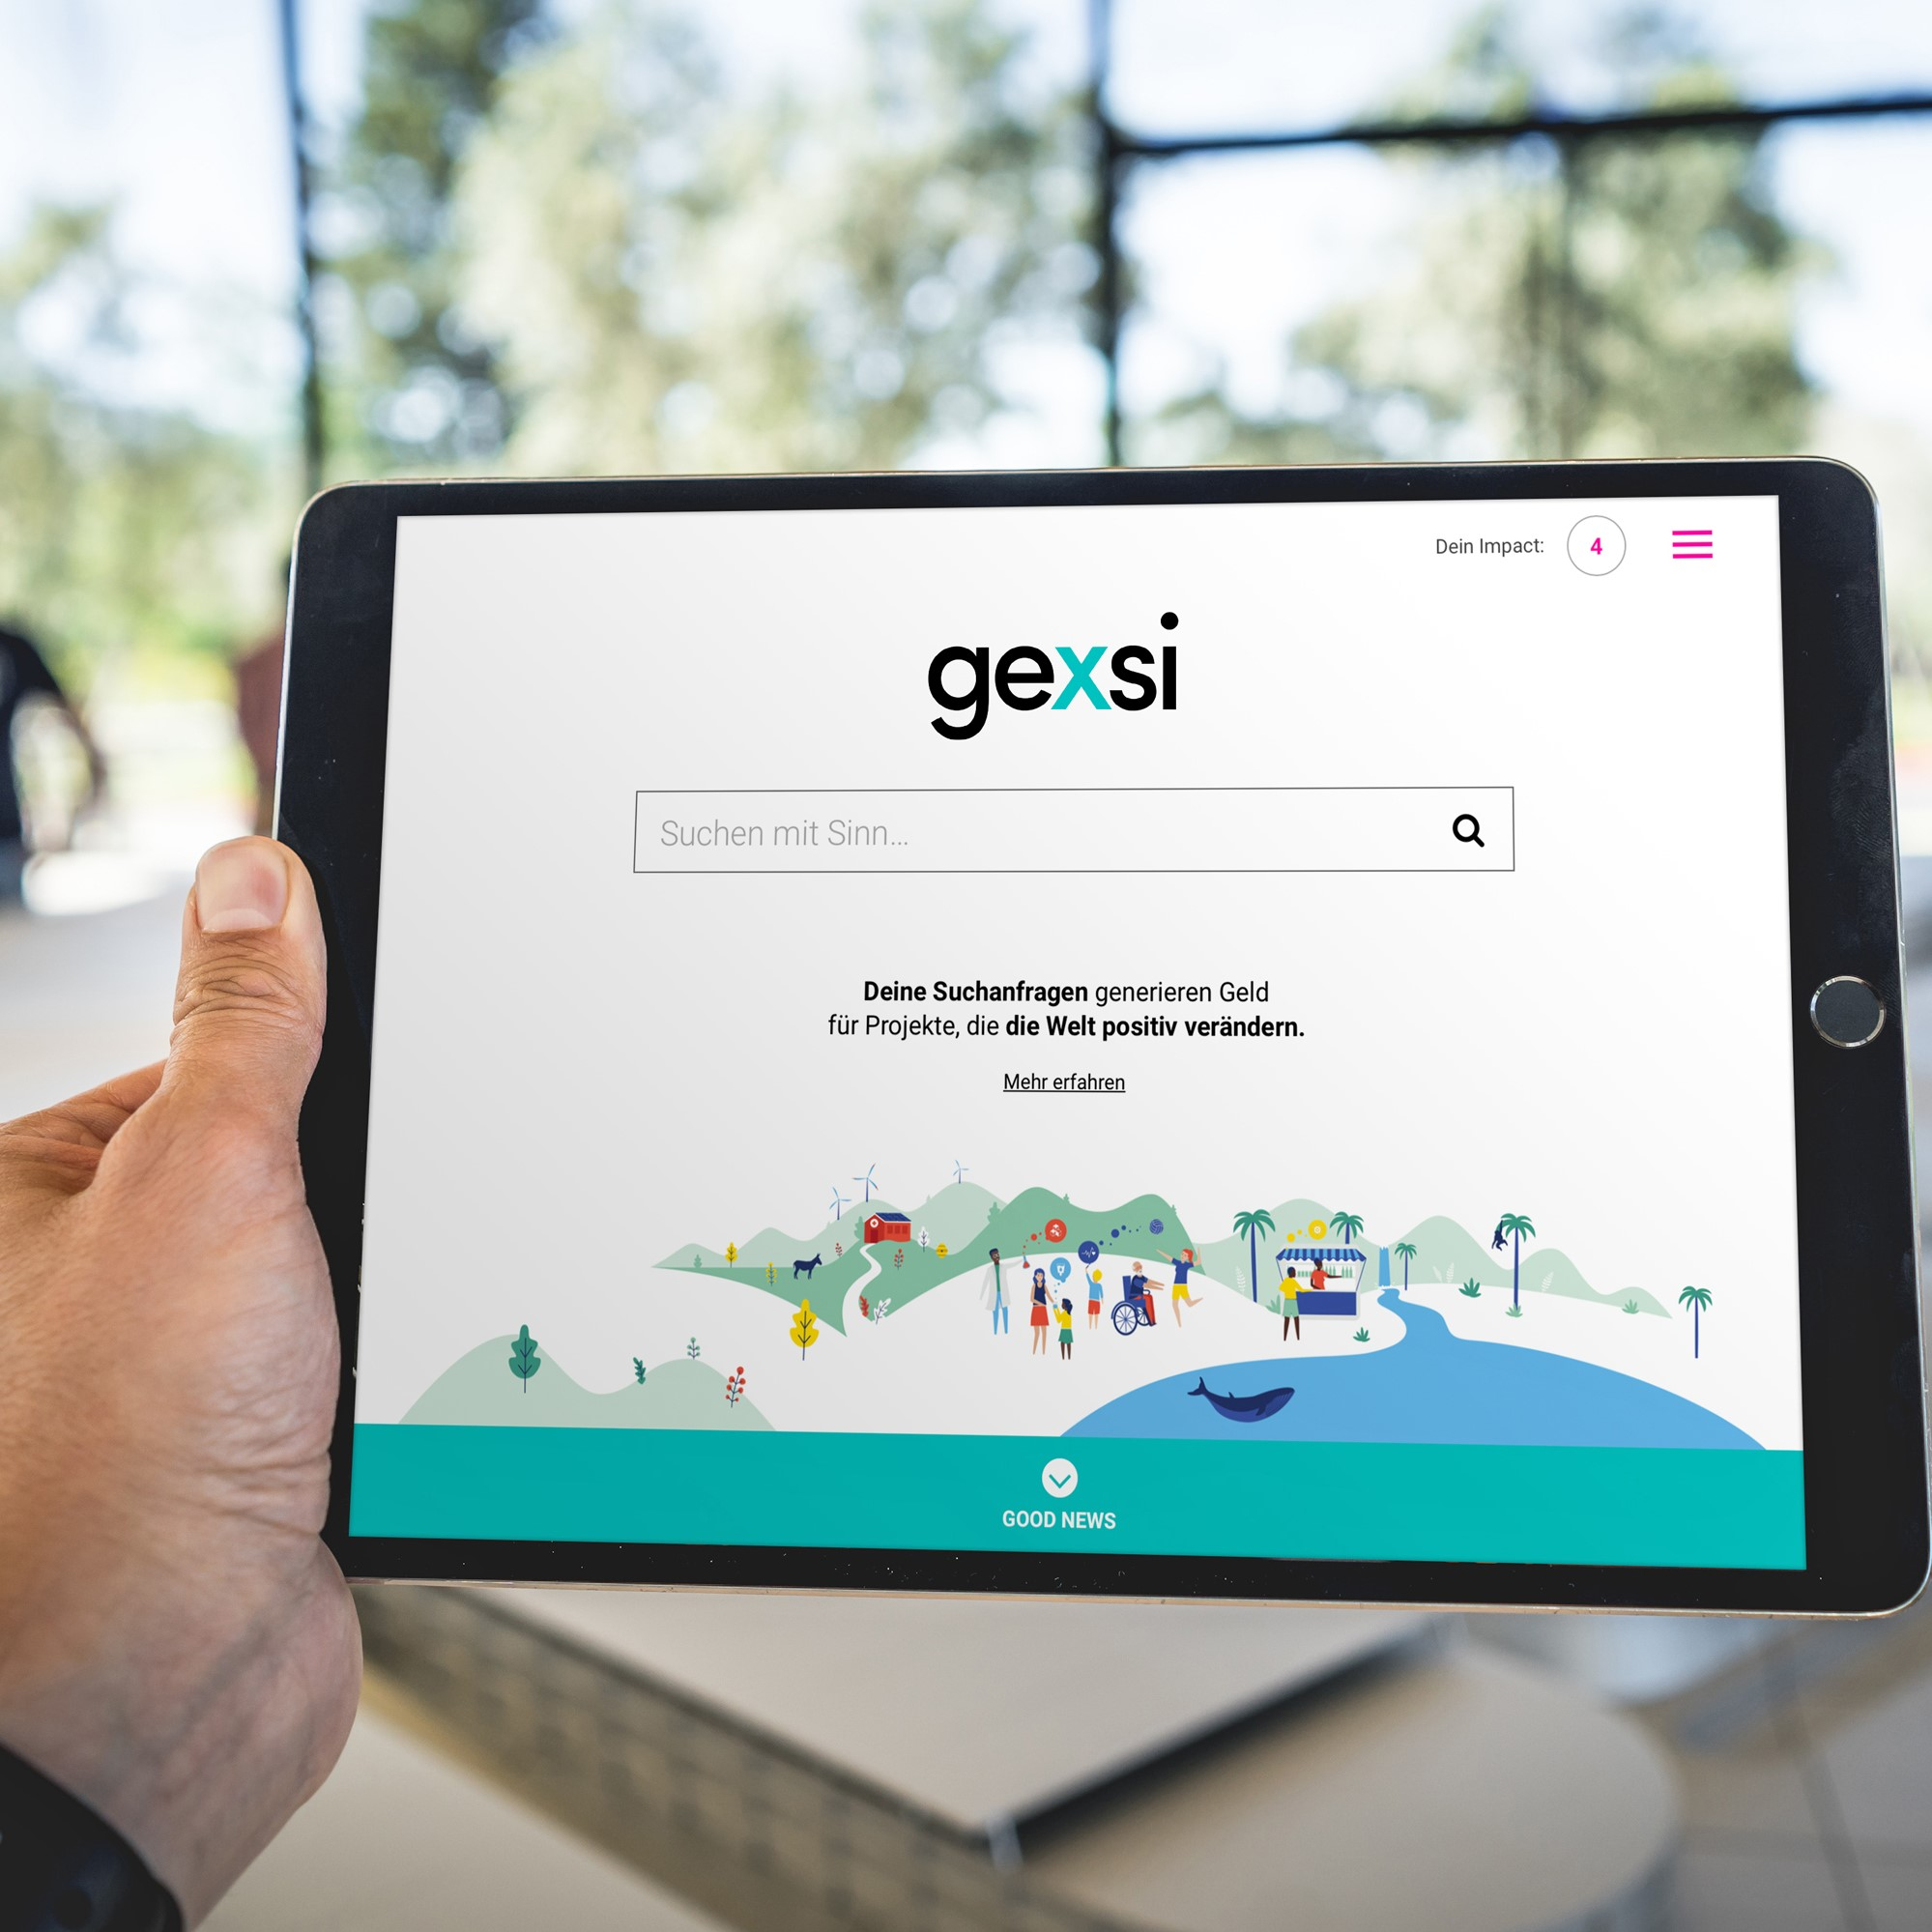 Sustainable search engine generating societal impact.